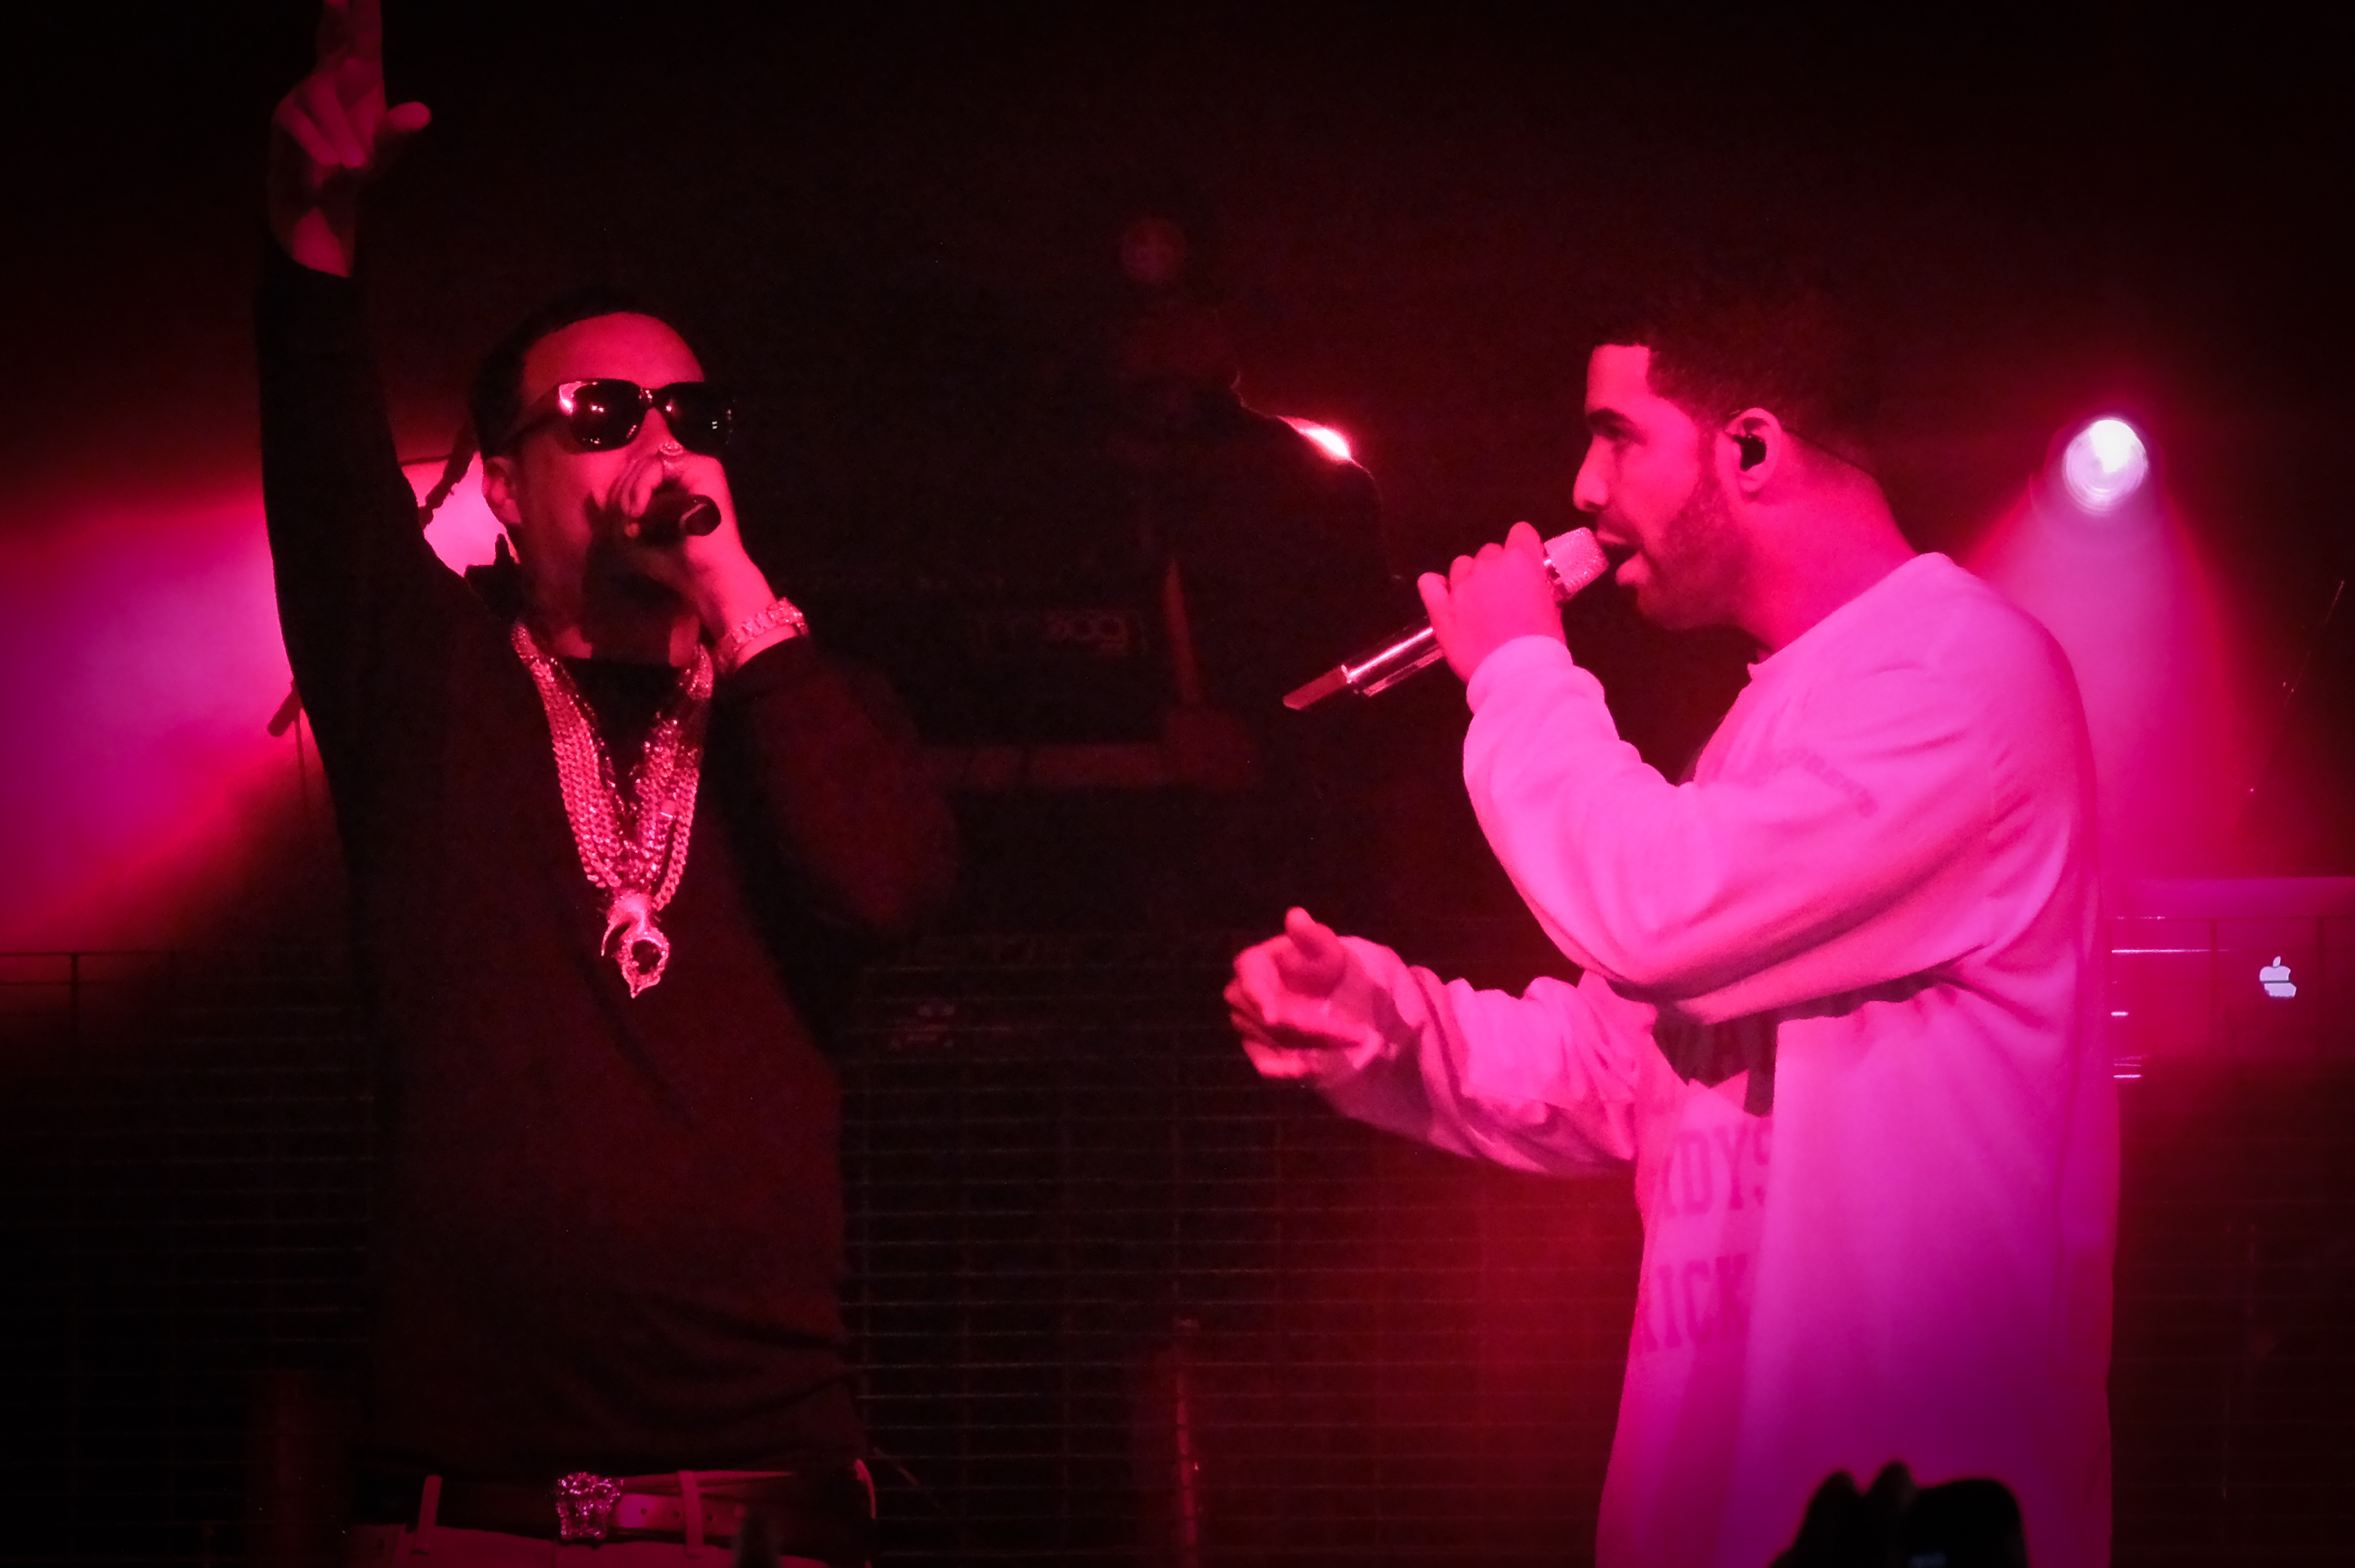 french montana wallpaper,performance,entertainment,performing arts,red,concert